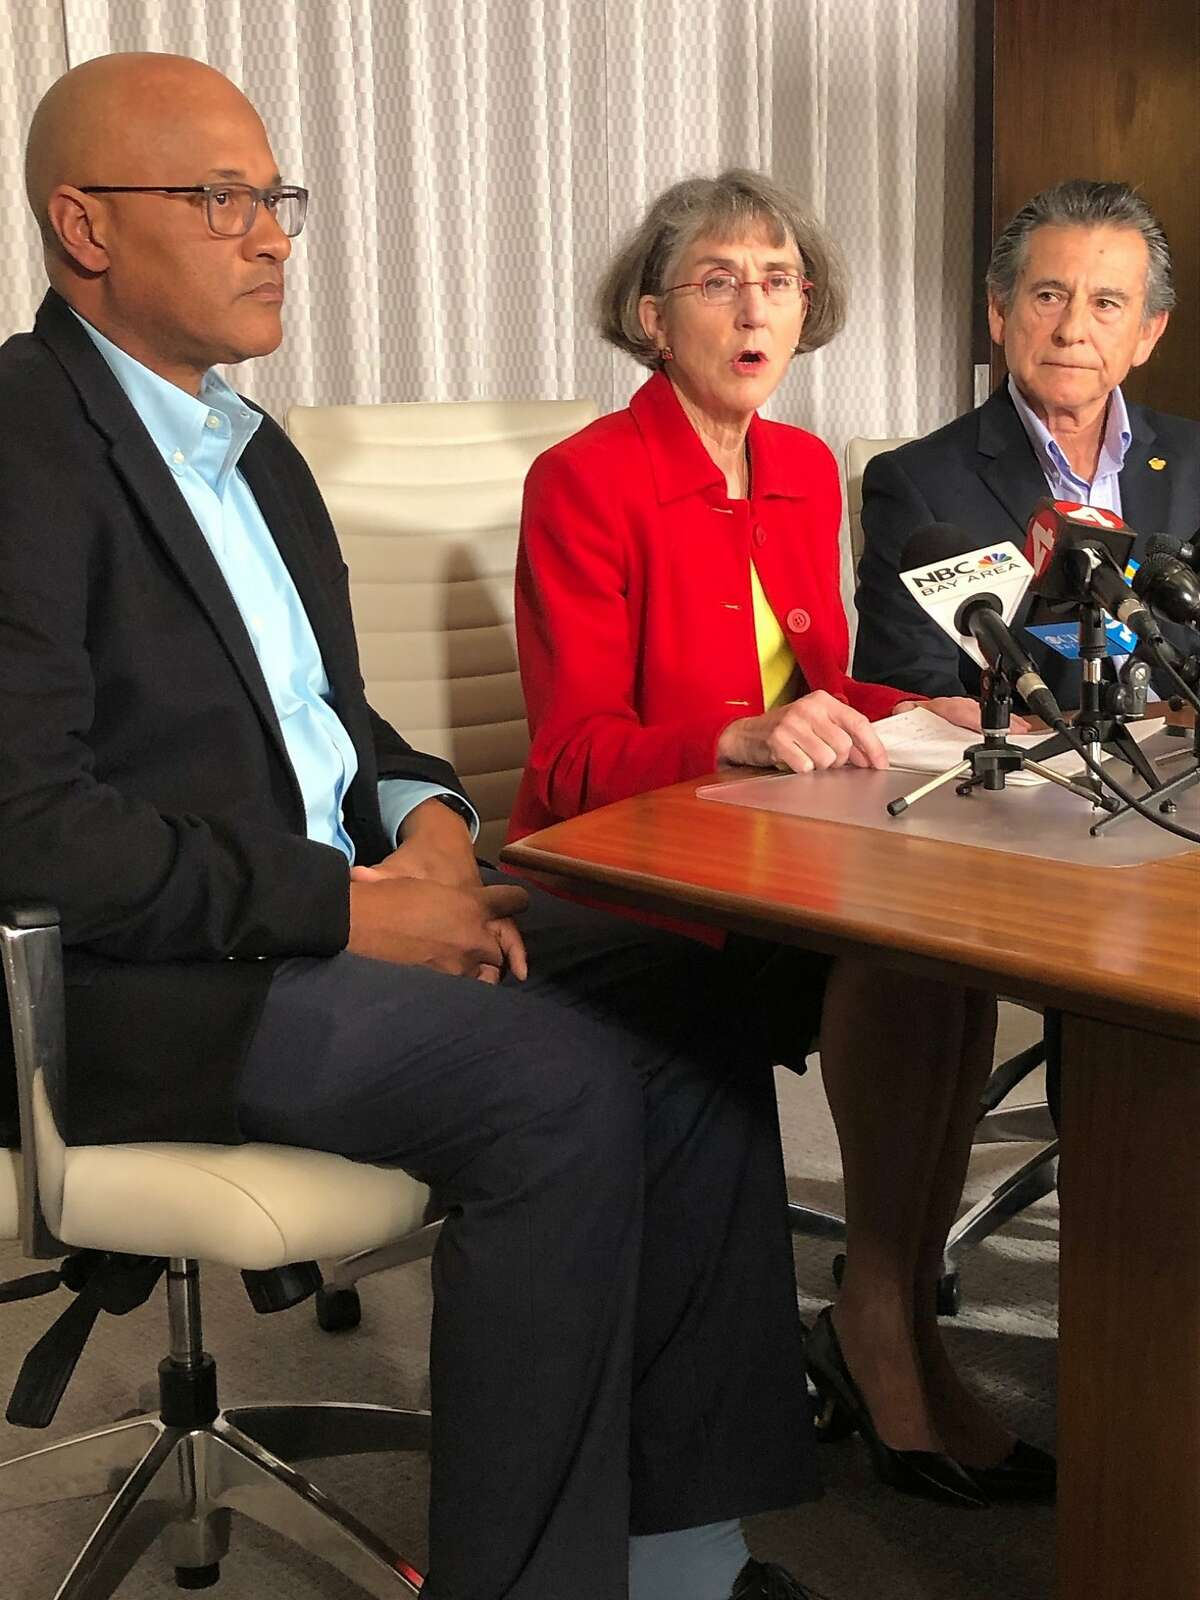 Flanked by former Oakland Police Chief Howard Jordan and Oakland city Councilman Noel Gallo, fired Oakland police Chief Anne Kirkpatrick calls for the removal of Oakland police monitor Robert Warshaw at a downtown Oakland press conference on Thursday, March 5, 2020.